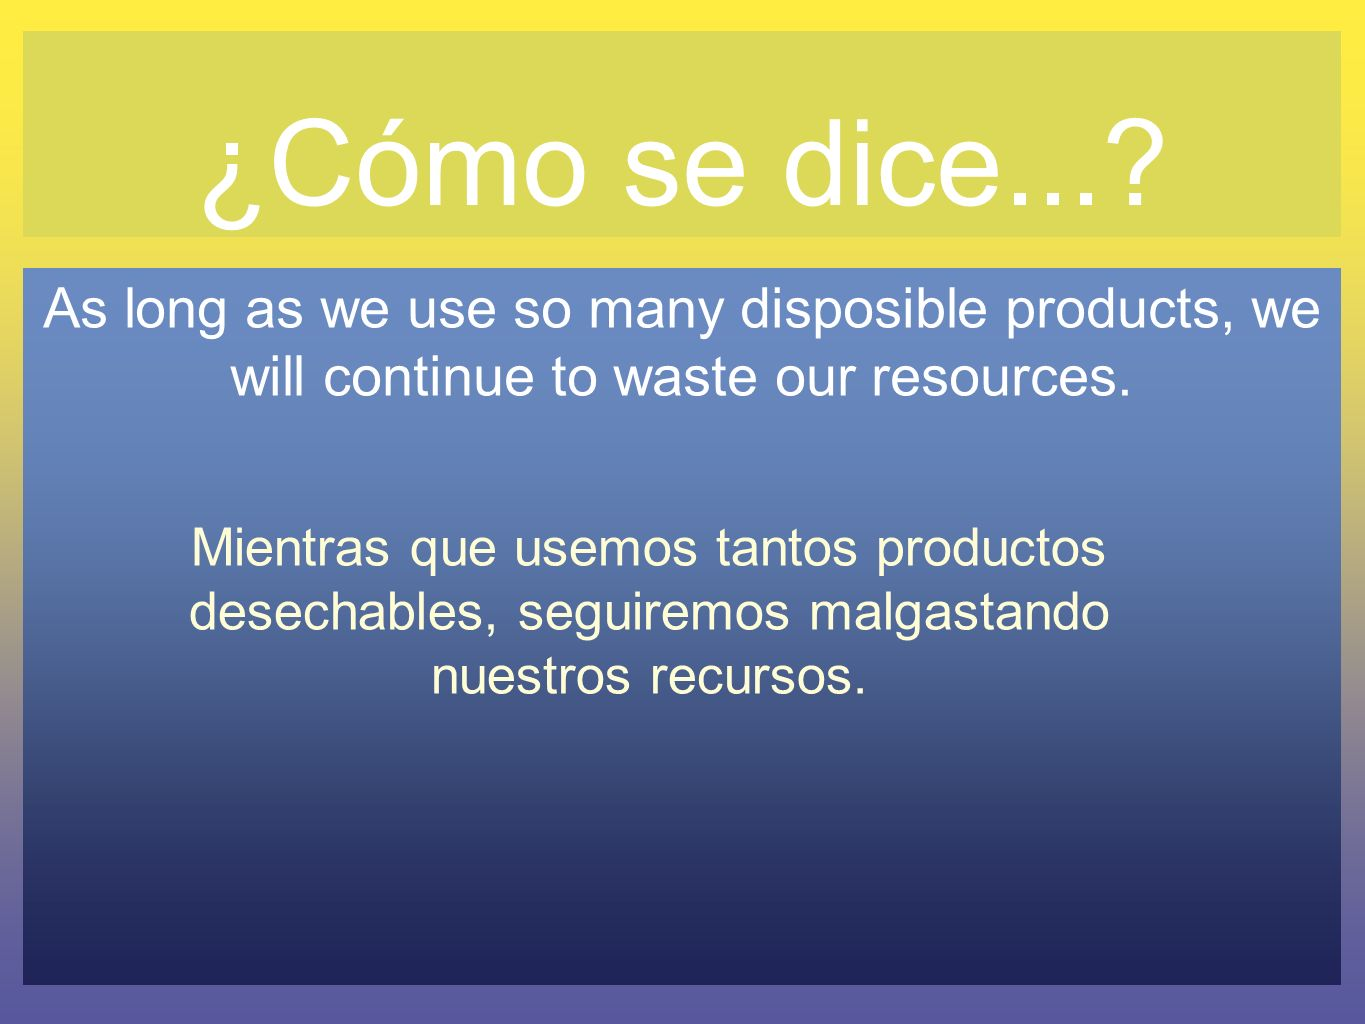 ¿Cómo se dice... As long as we use so many disposible products, we will continue to waste our resources.